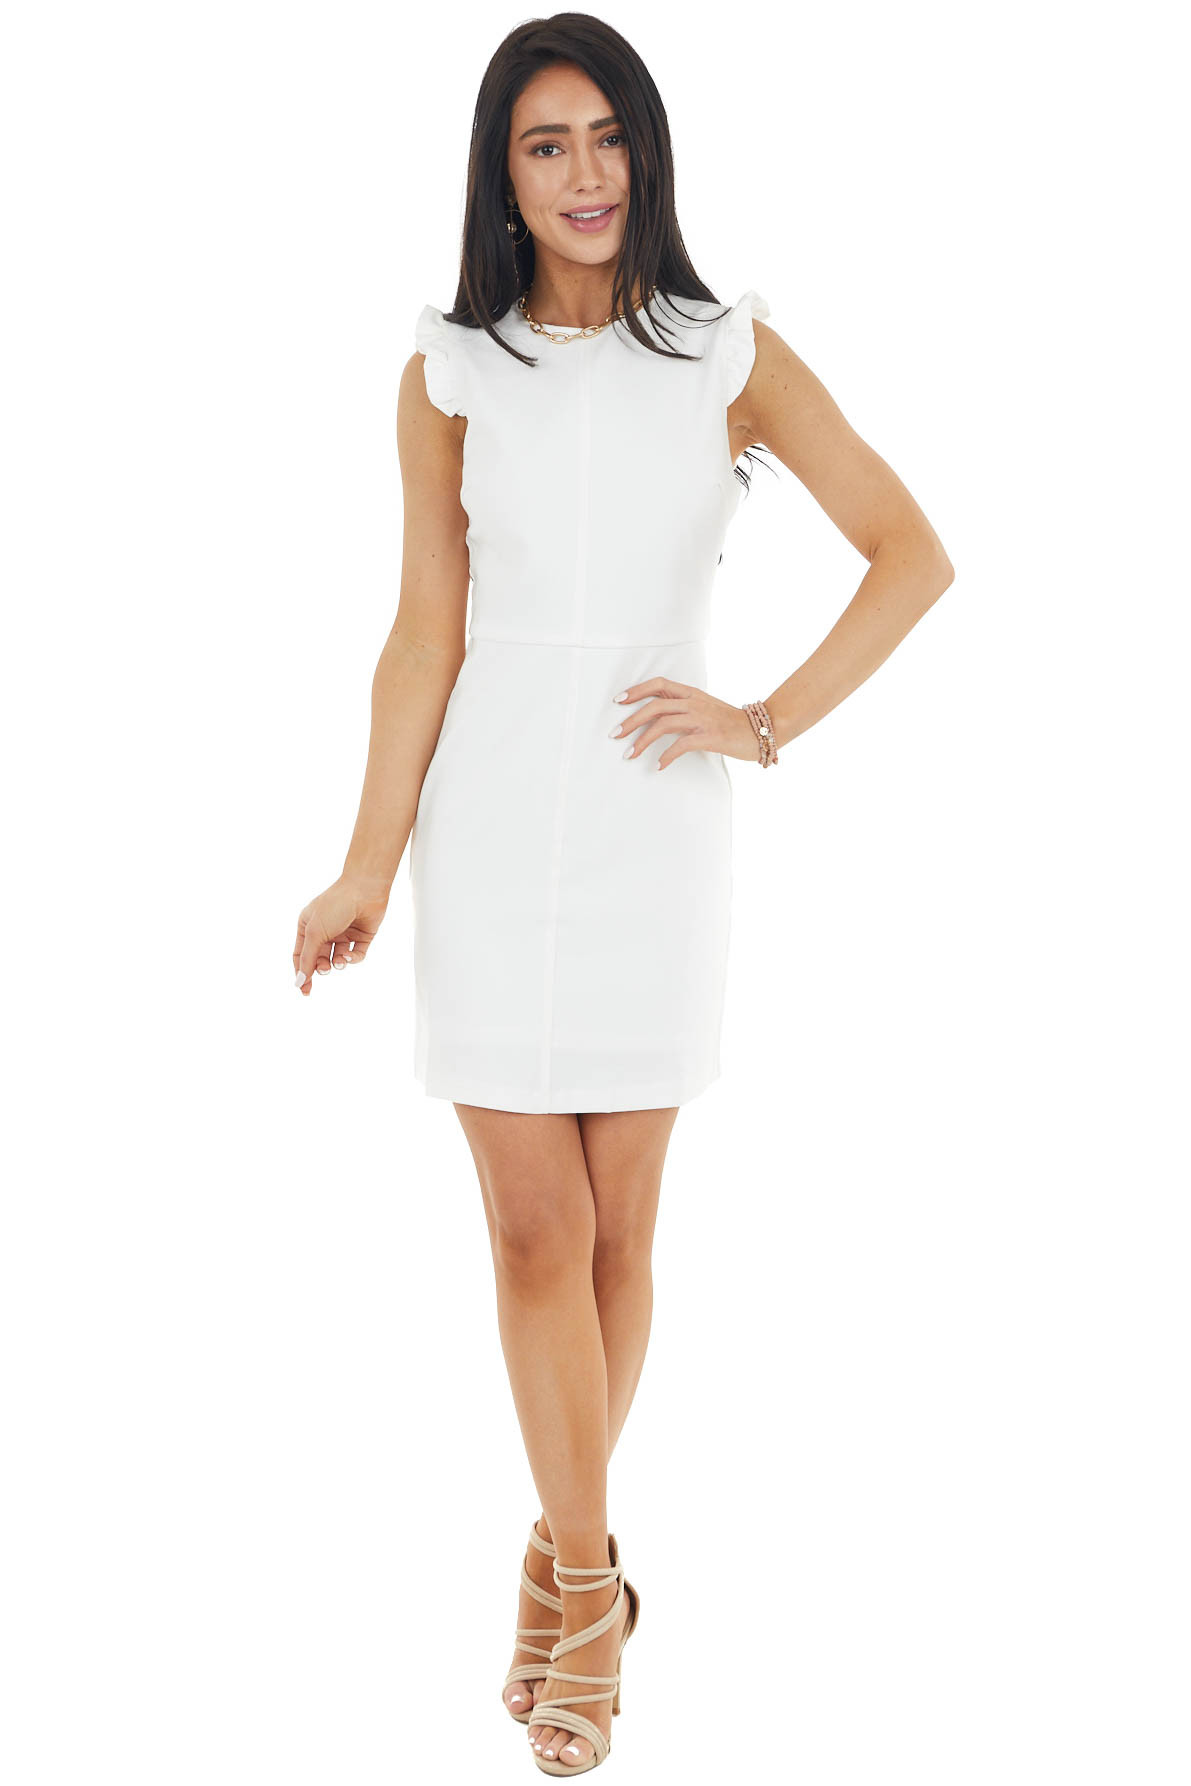 Off White Cap Sleeve Short Dress with Back Zipper Detail